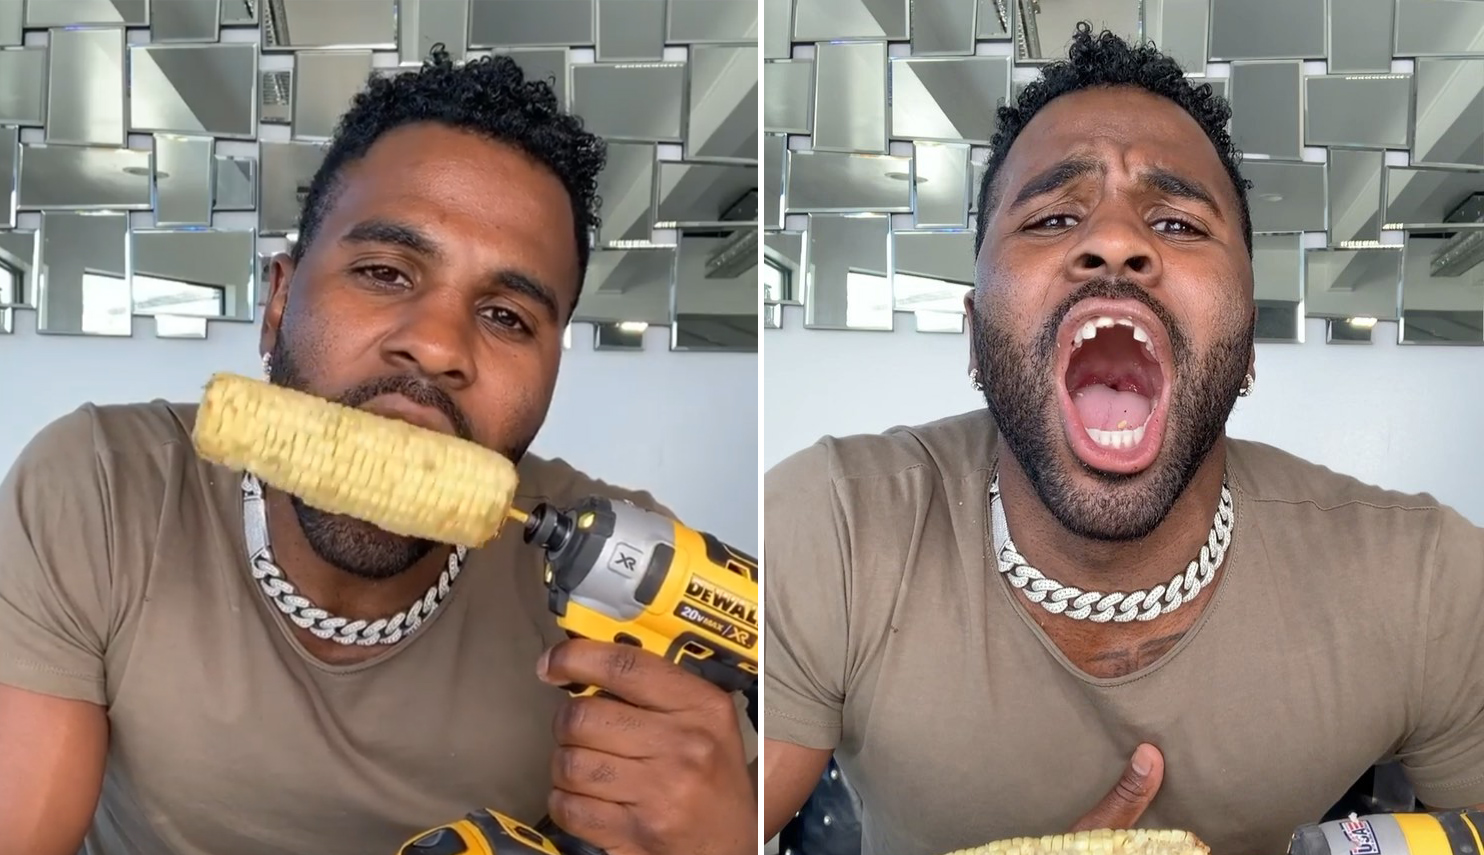 Jason Derulo Appears to Chip His Teeth While Eating Corn on the Cob before after